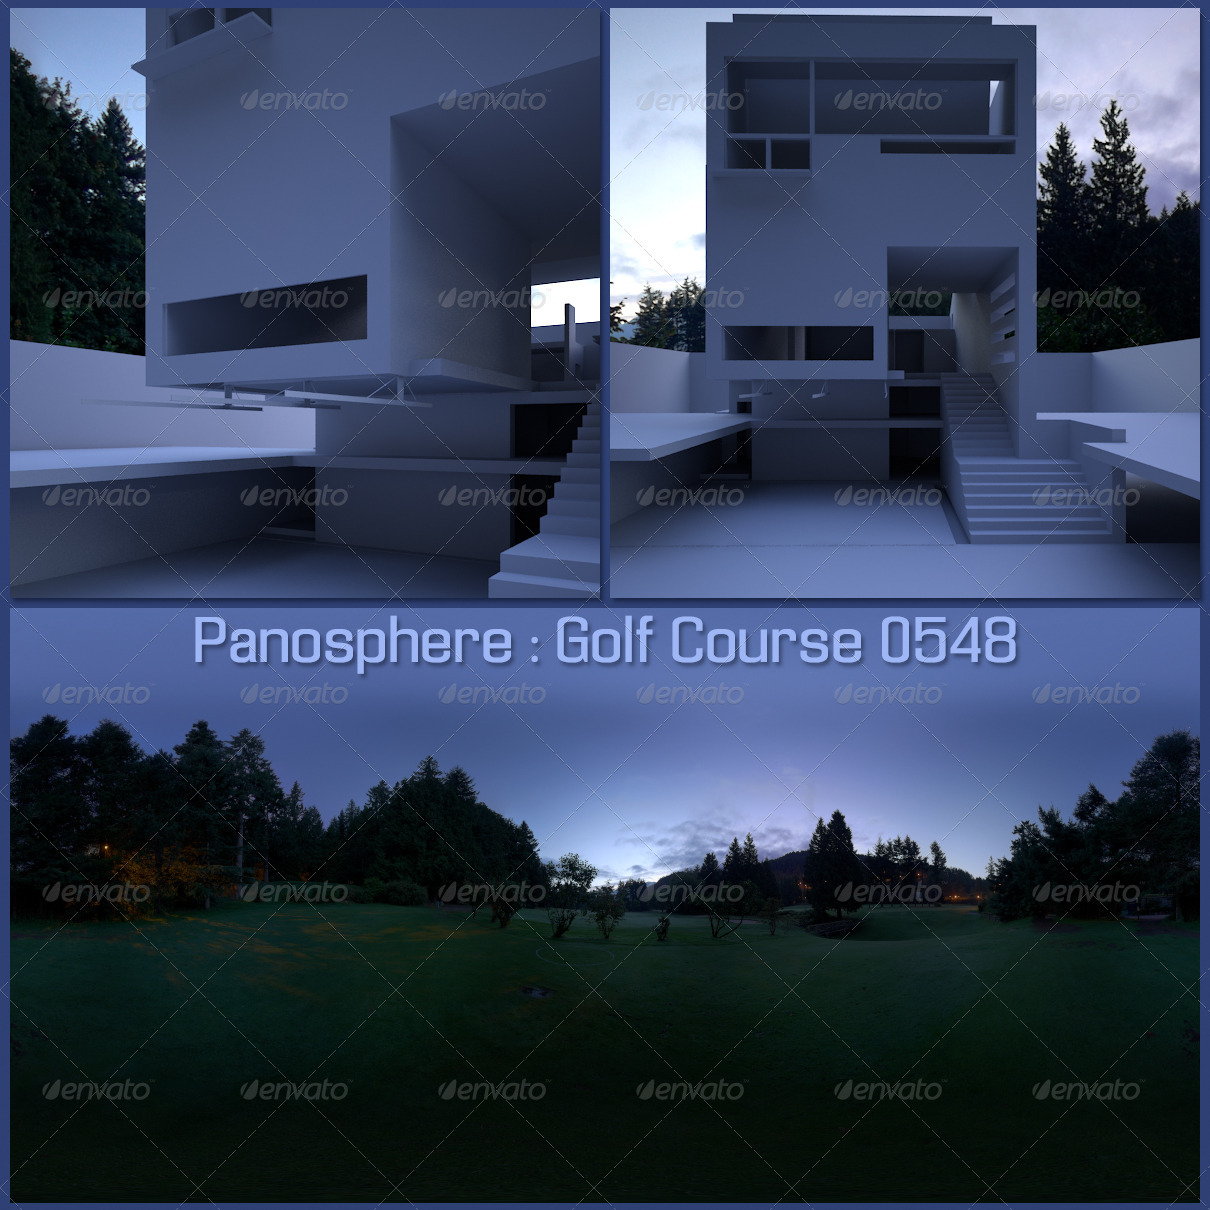 Panosphere HDRI -_- Golf Course 0548